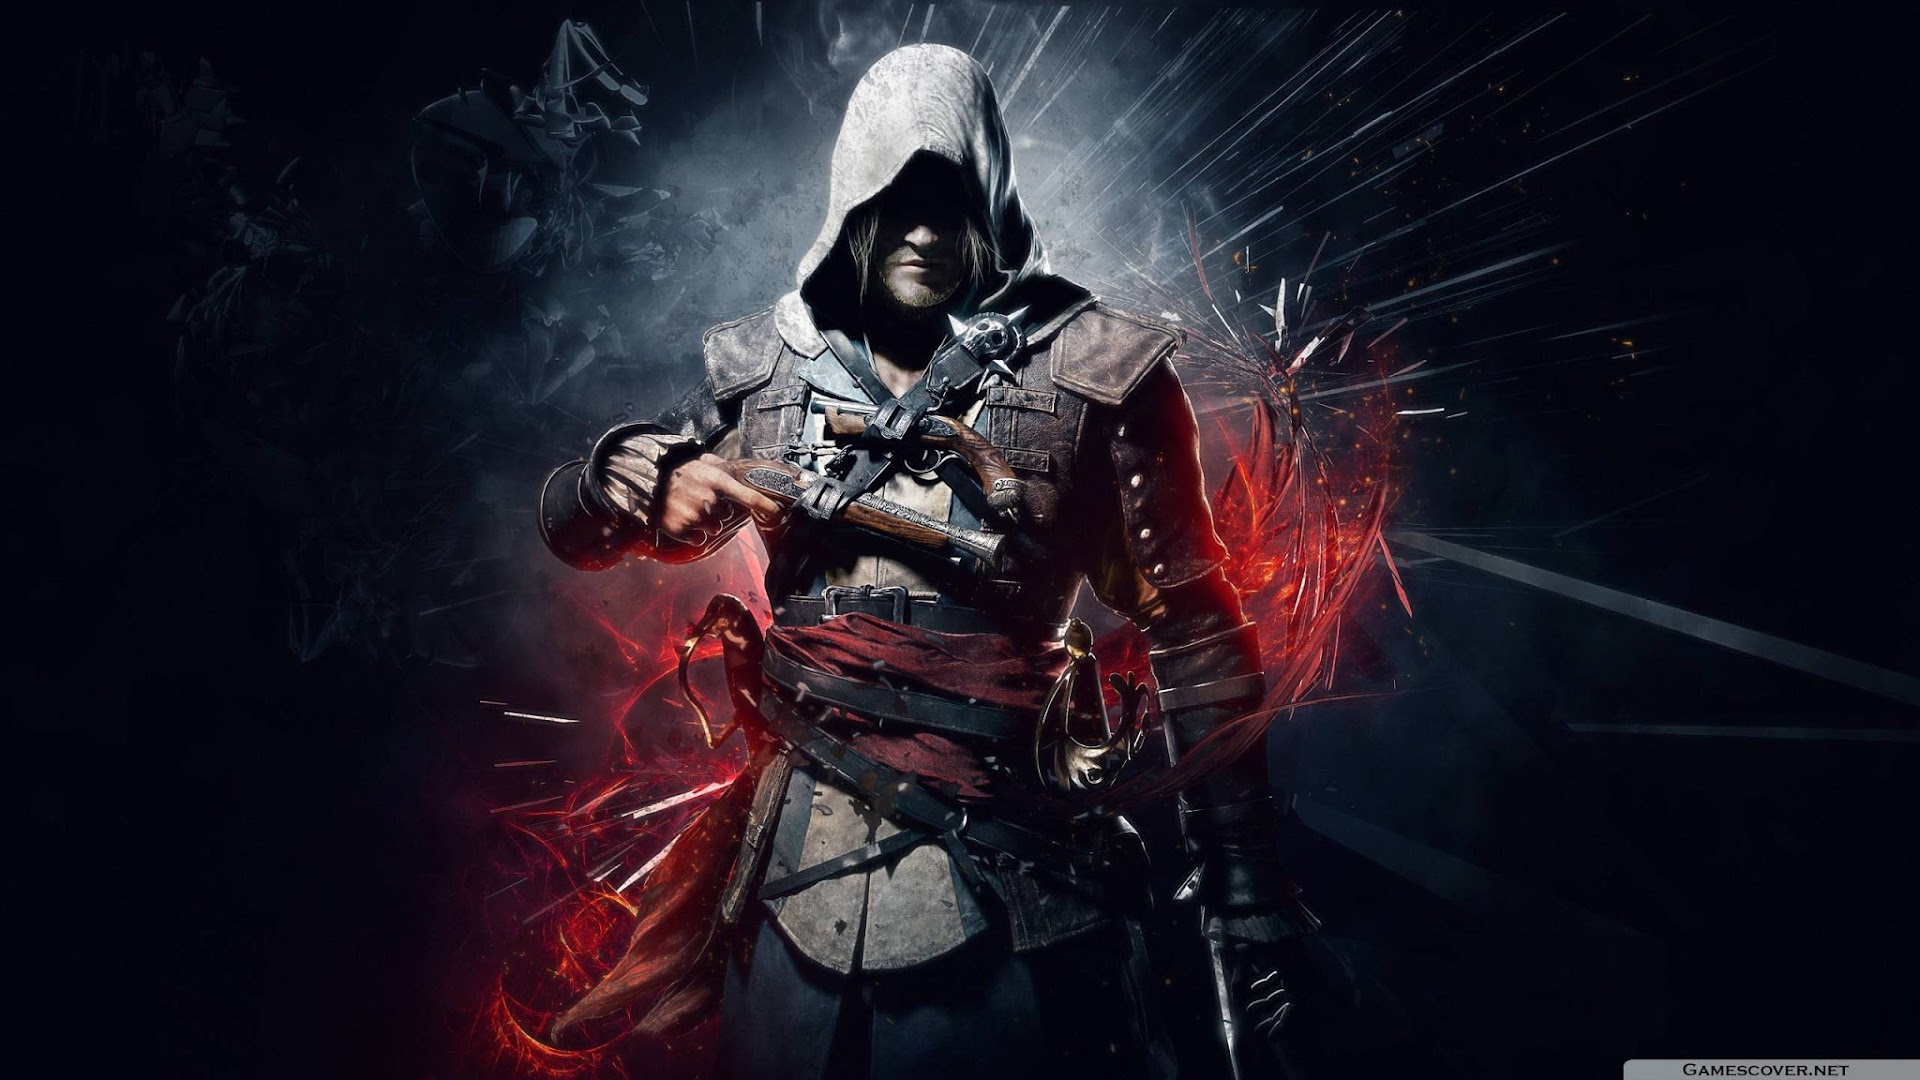 Assassin's Creed Black Flag HD Wallpapers - Read games review, play online games & download ...